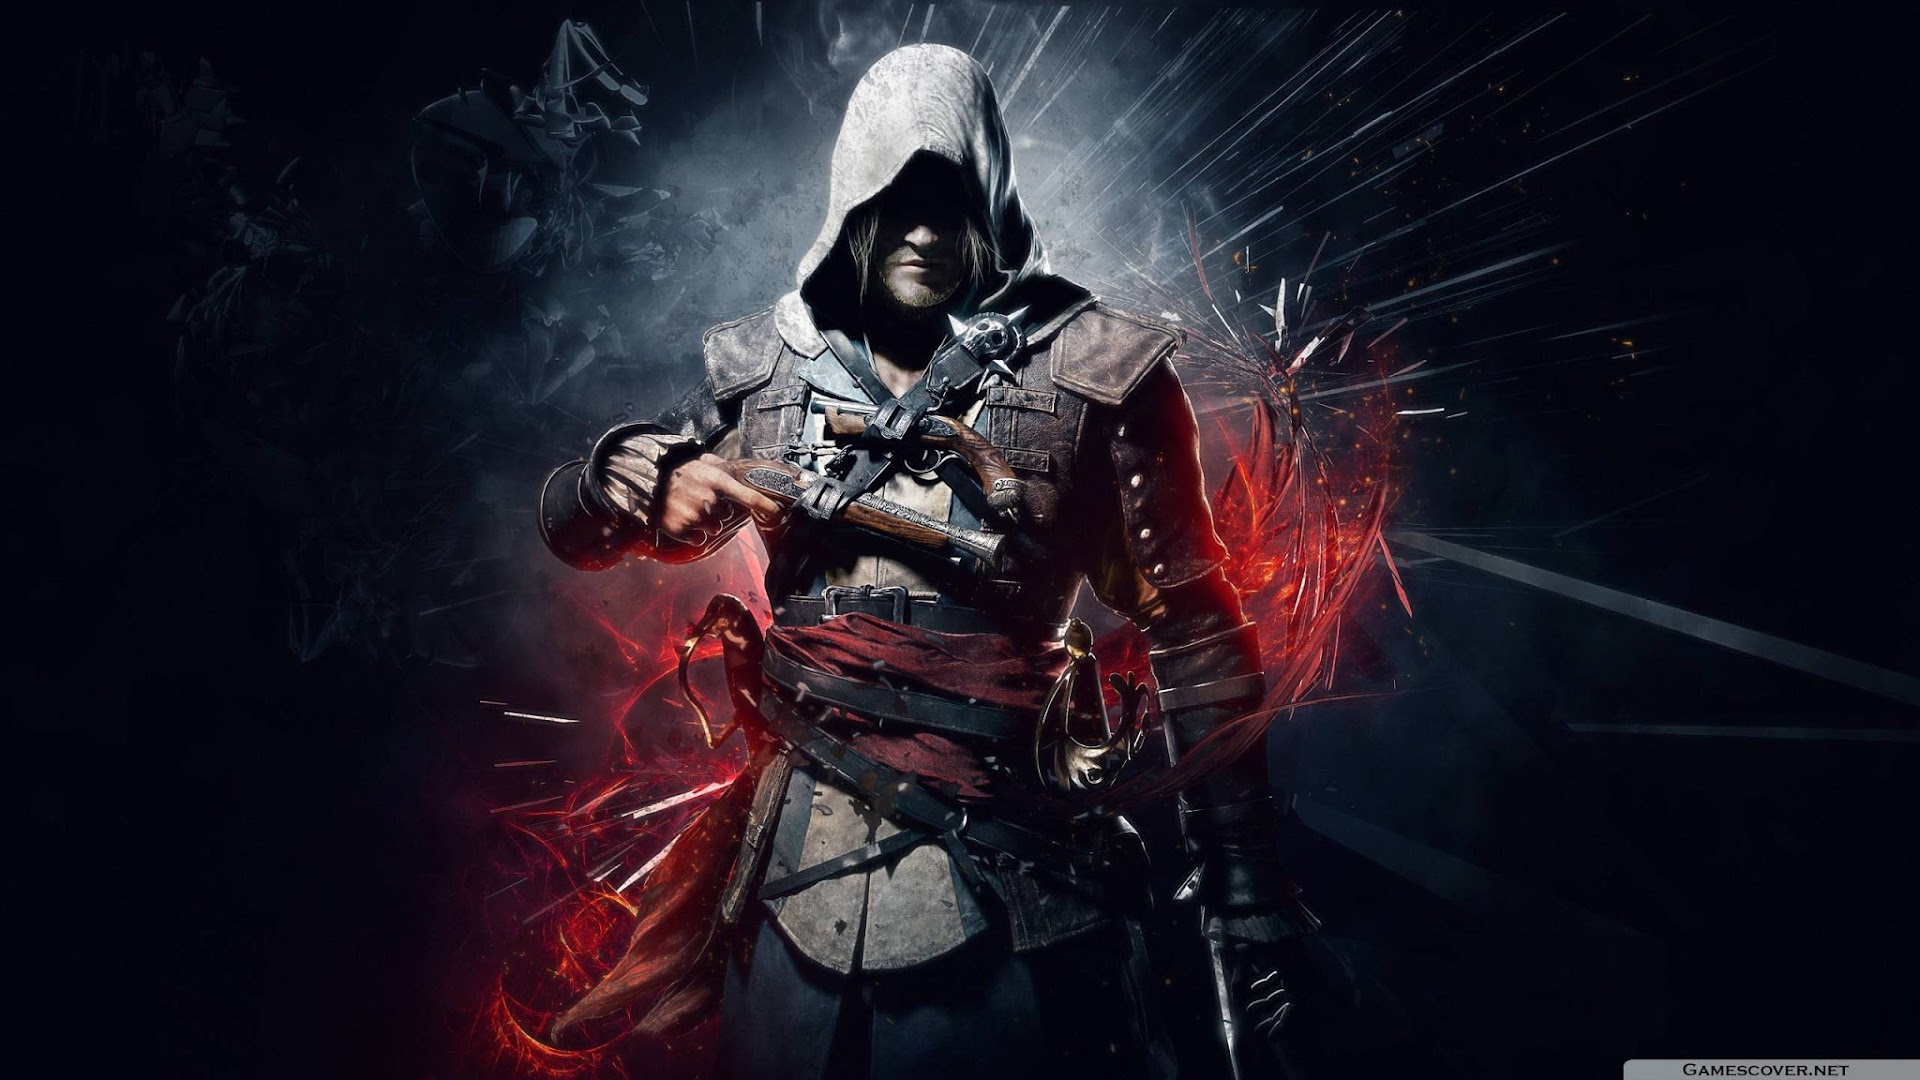 Assassin's Creed Black Flag HD Wallpapers - Read games review, play online games & download ...